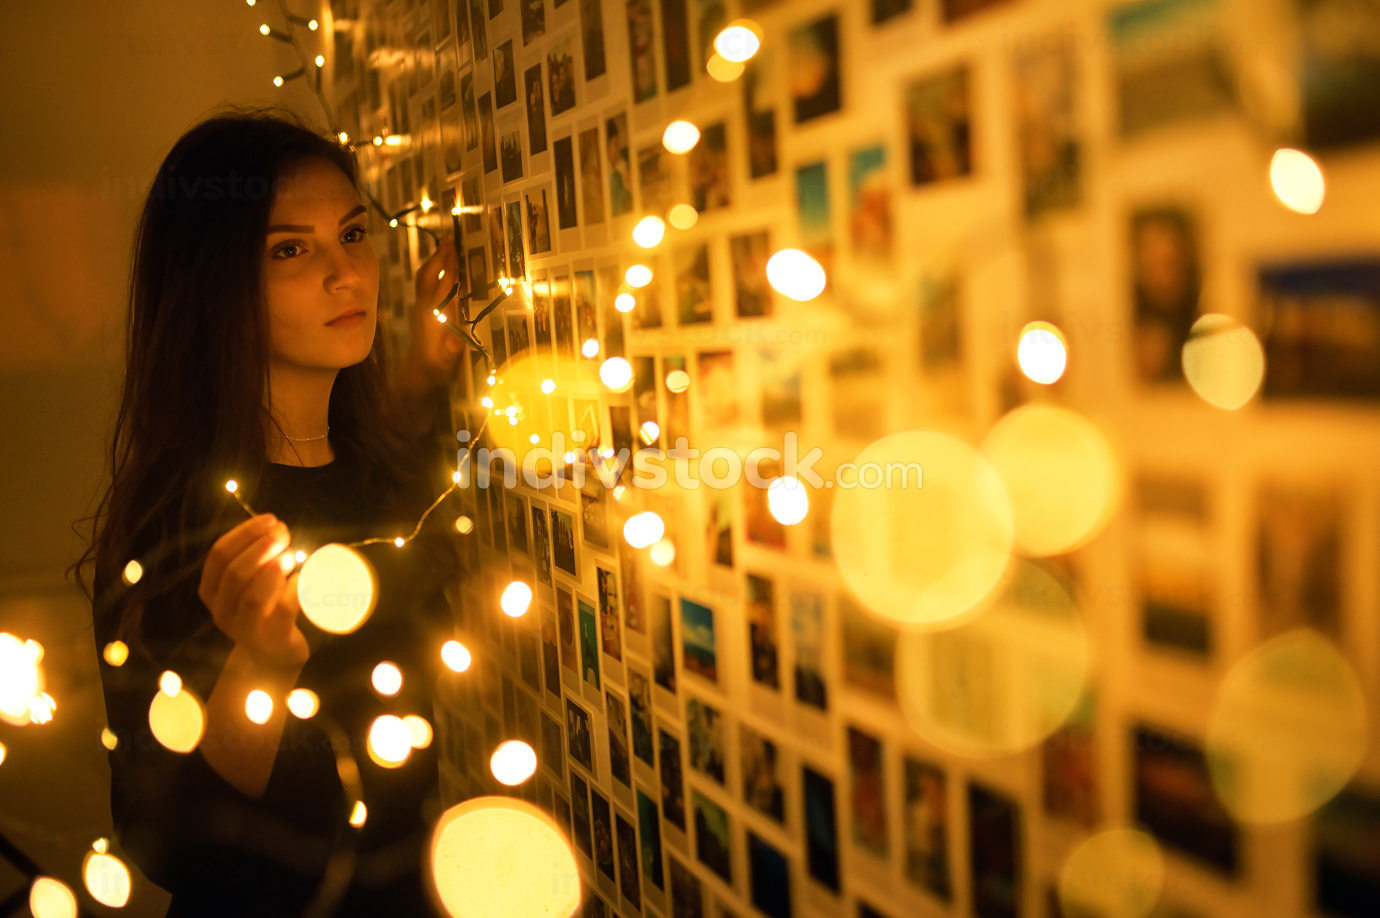 A Young Woman In Lights and Memories Photos on Wall